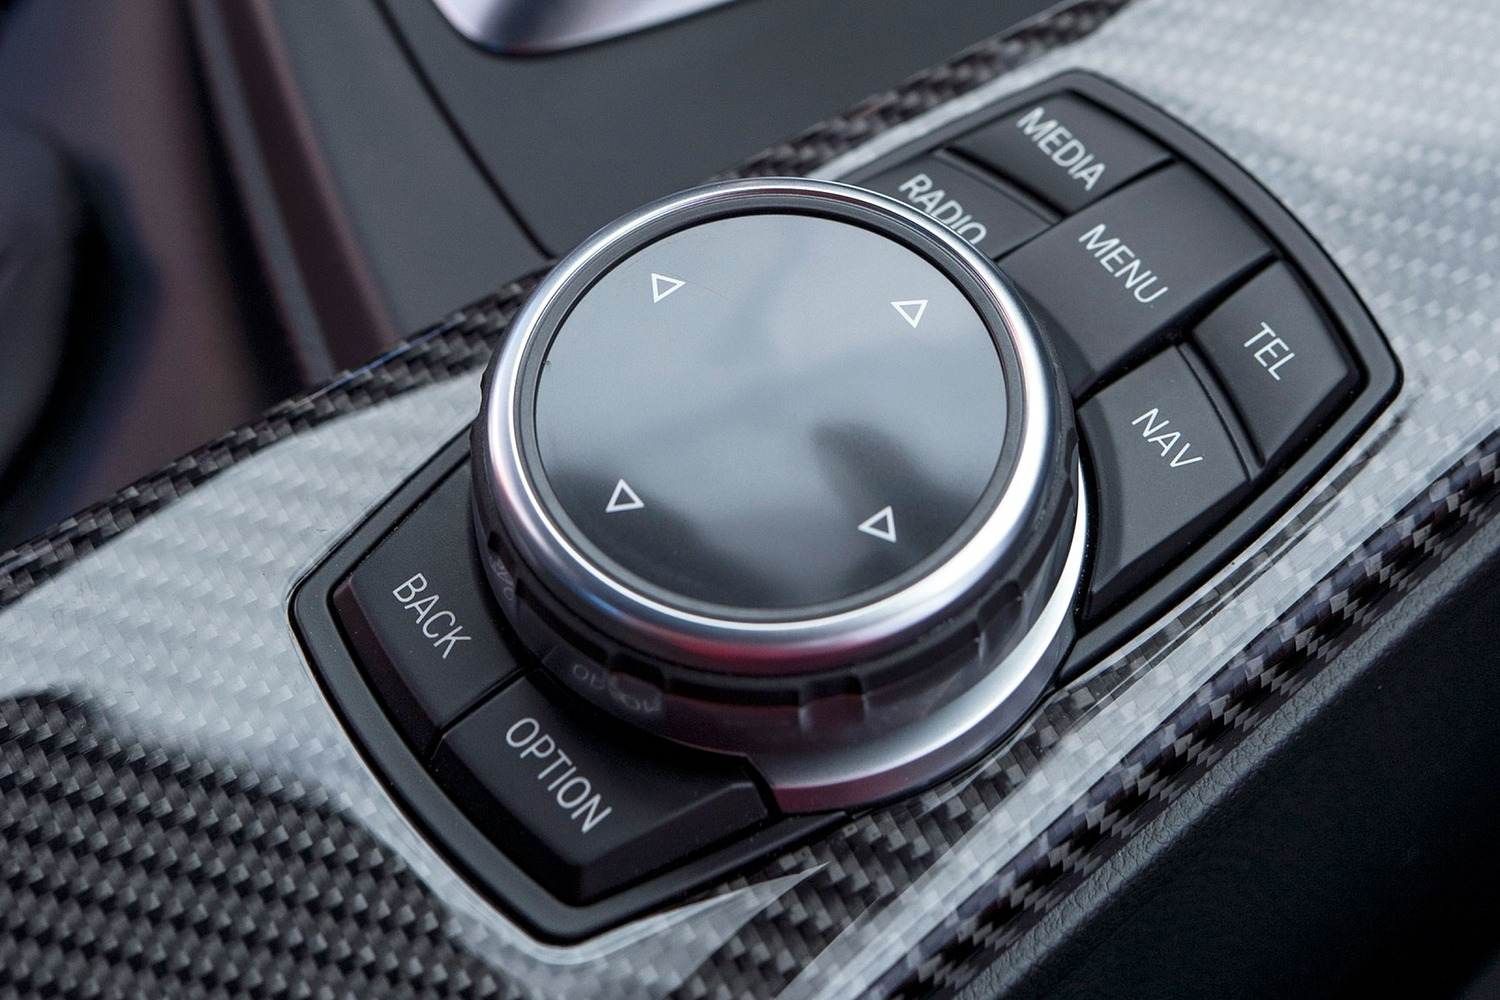 BMW M4 Coupe Aux Controls (2015 model year shown)